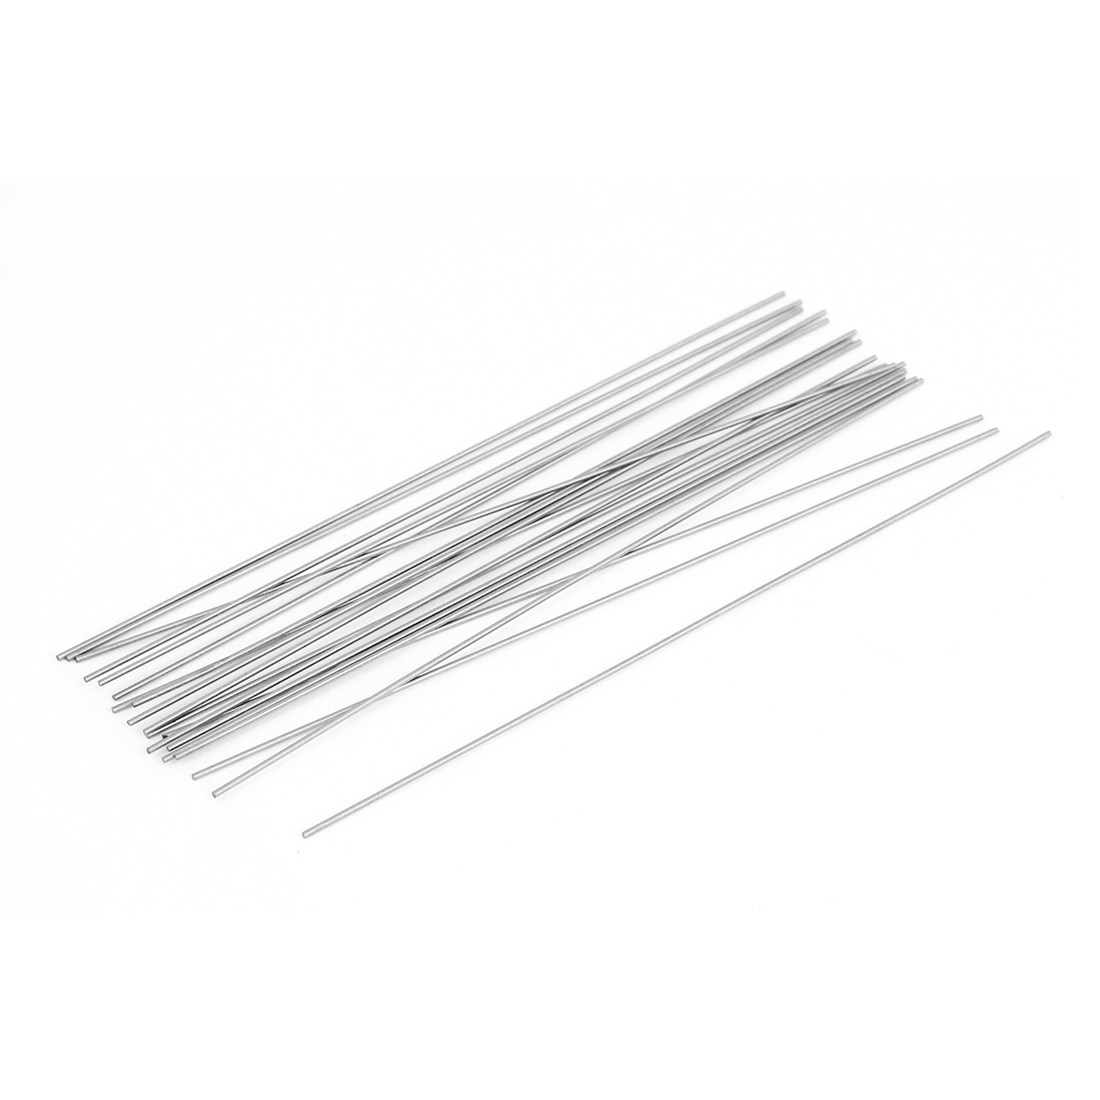 20 Pcs 100mmx0.7mm Steel Turning Tool Lathe Bars Round Stock Silver Tone by